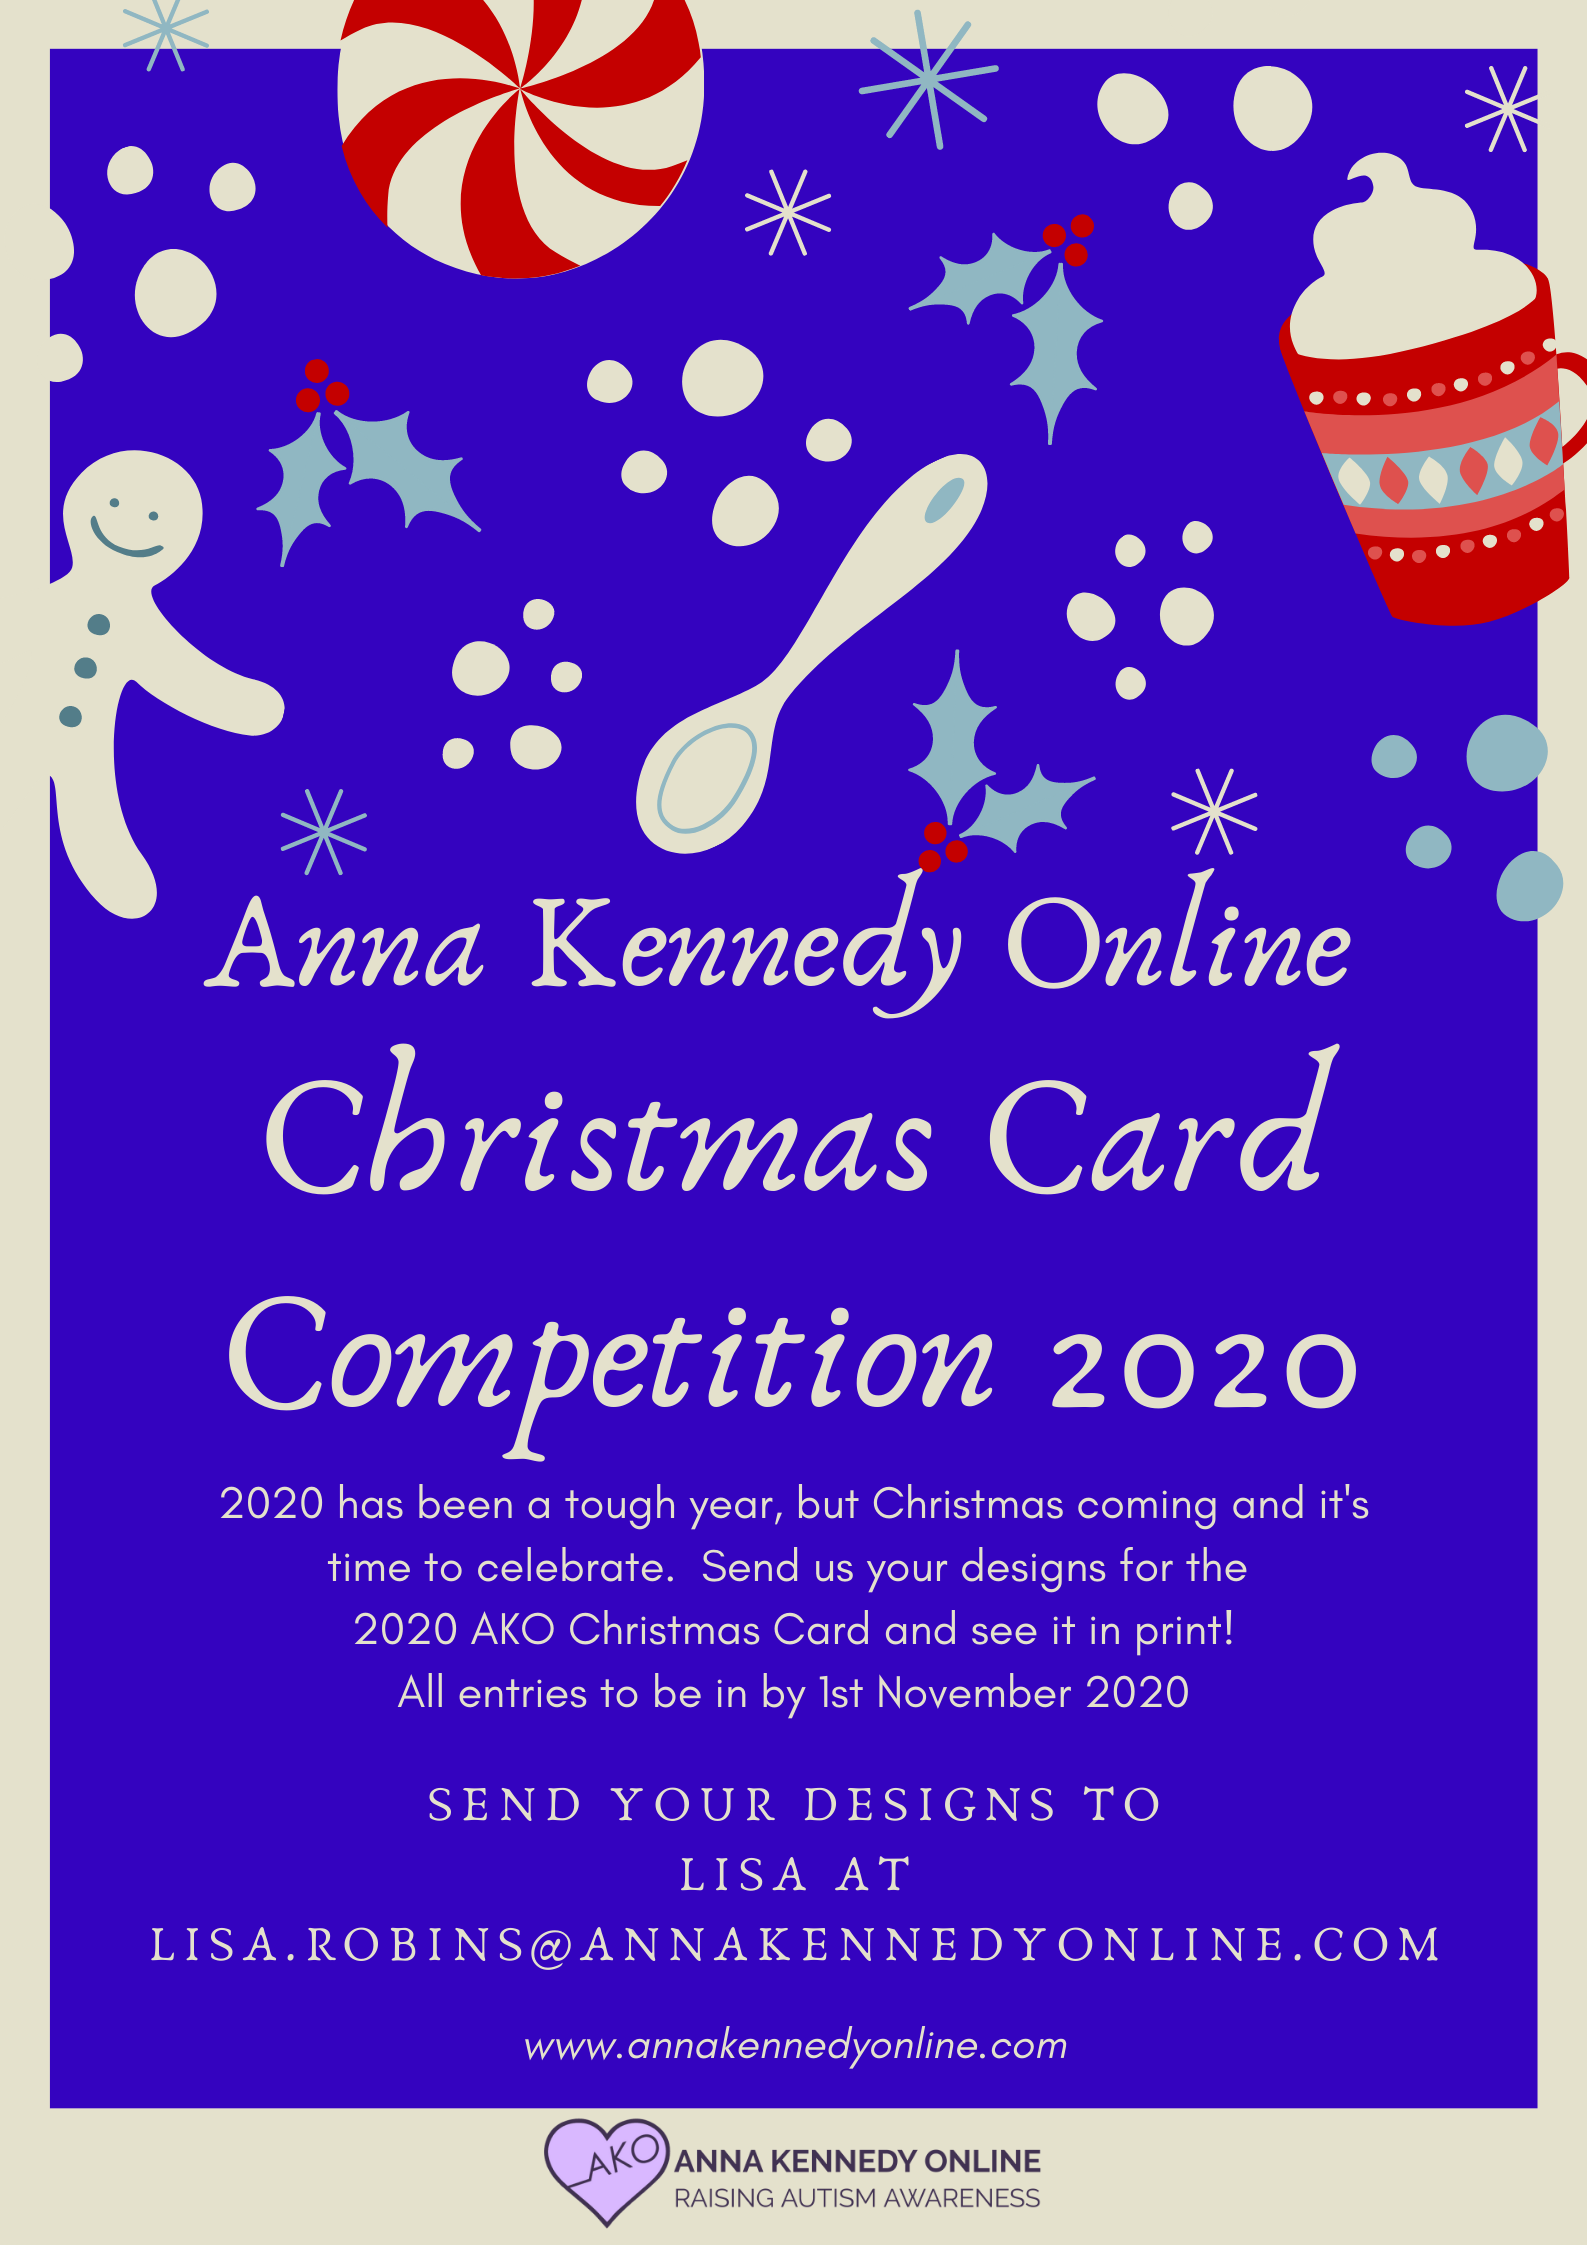 AKO Christmas Card Competition